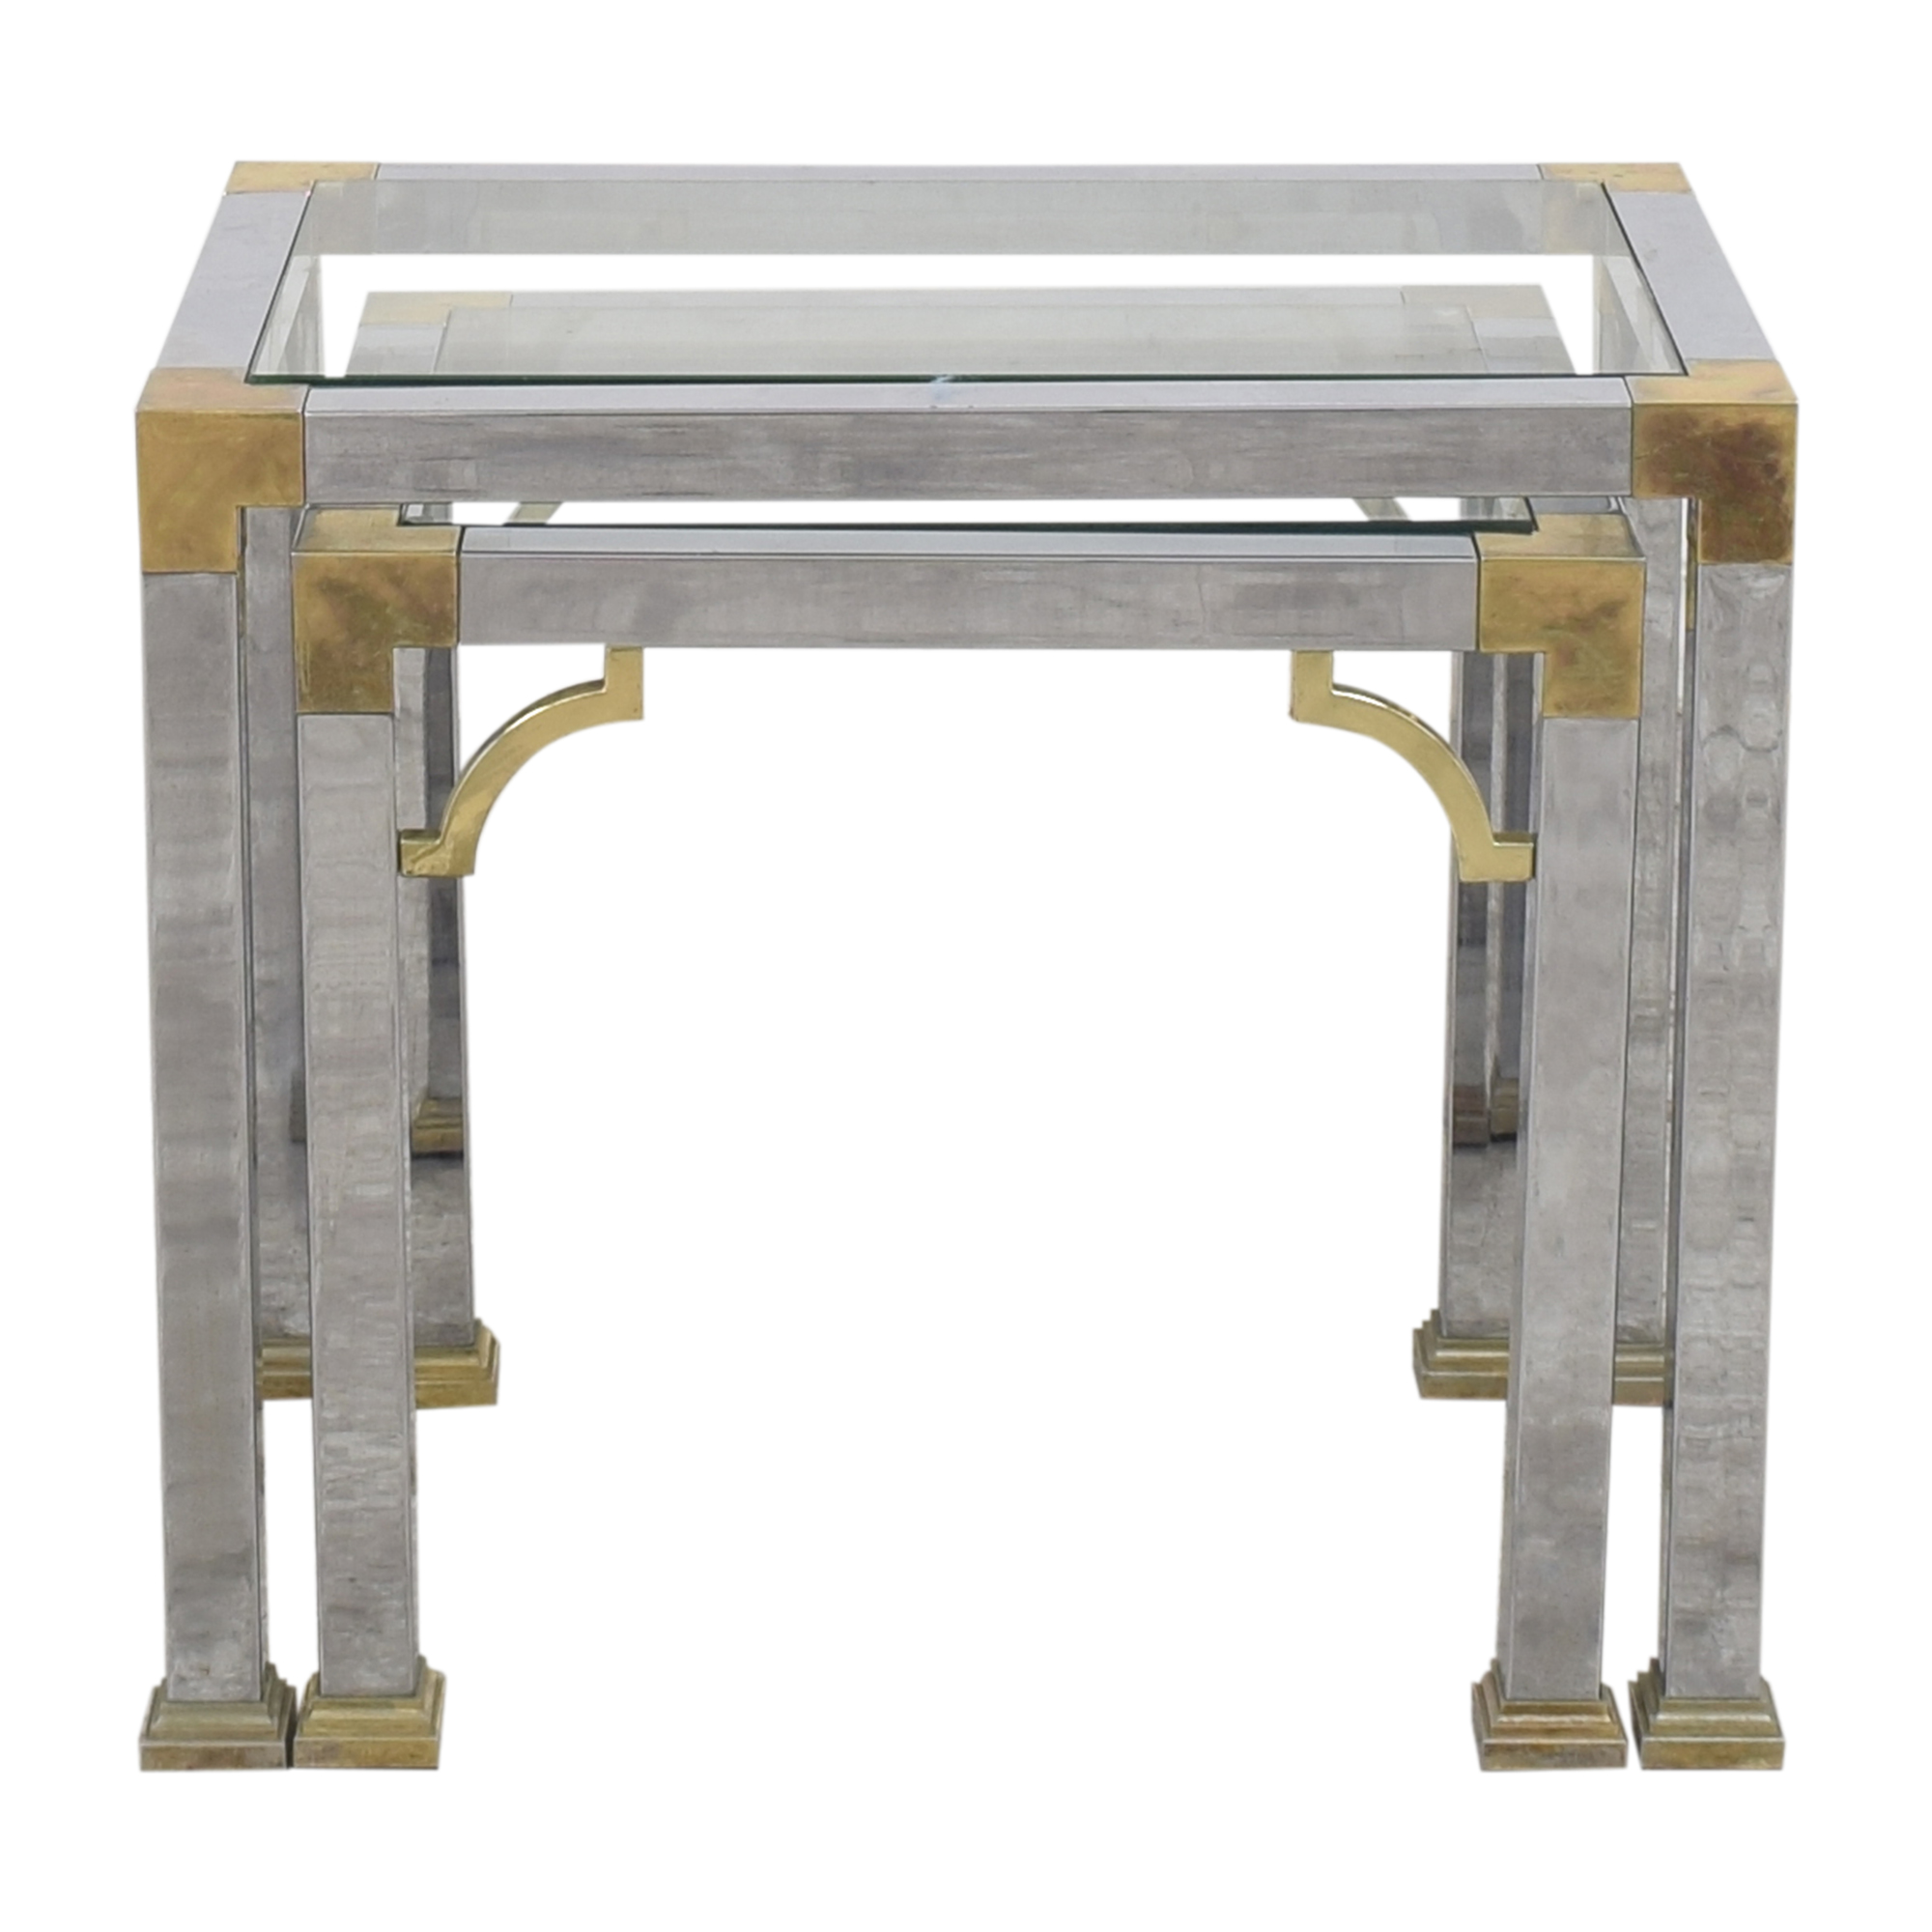 shop B. Altman Nesting End Tables B. Altman End Tables